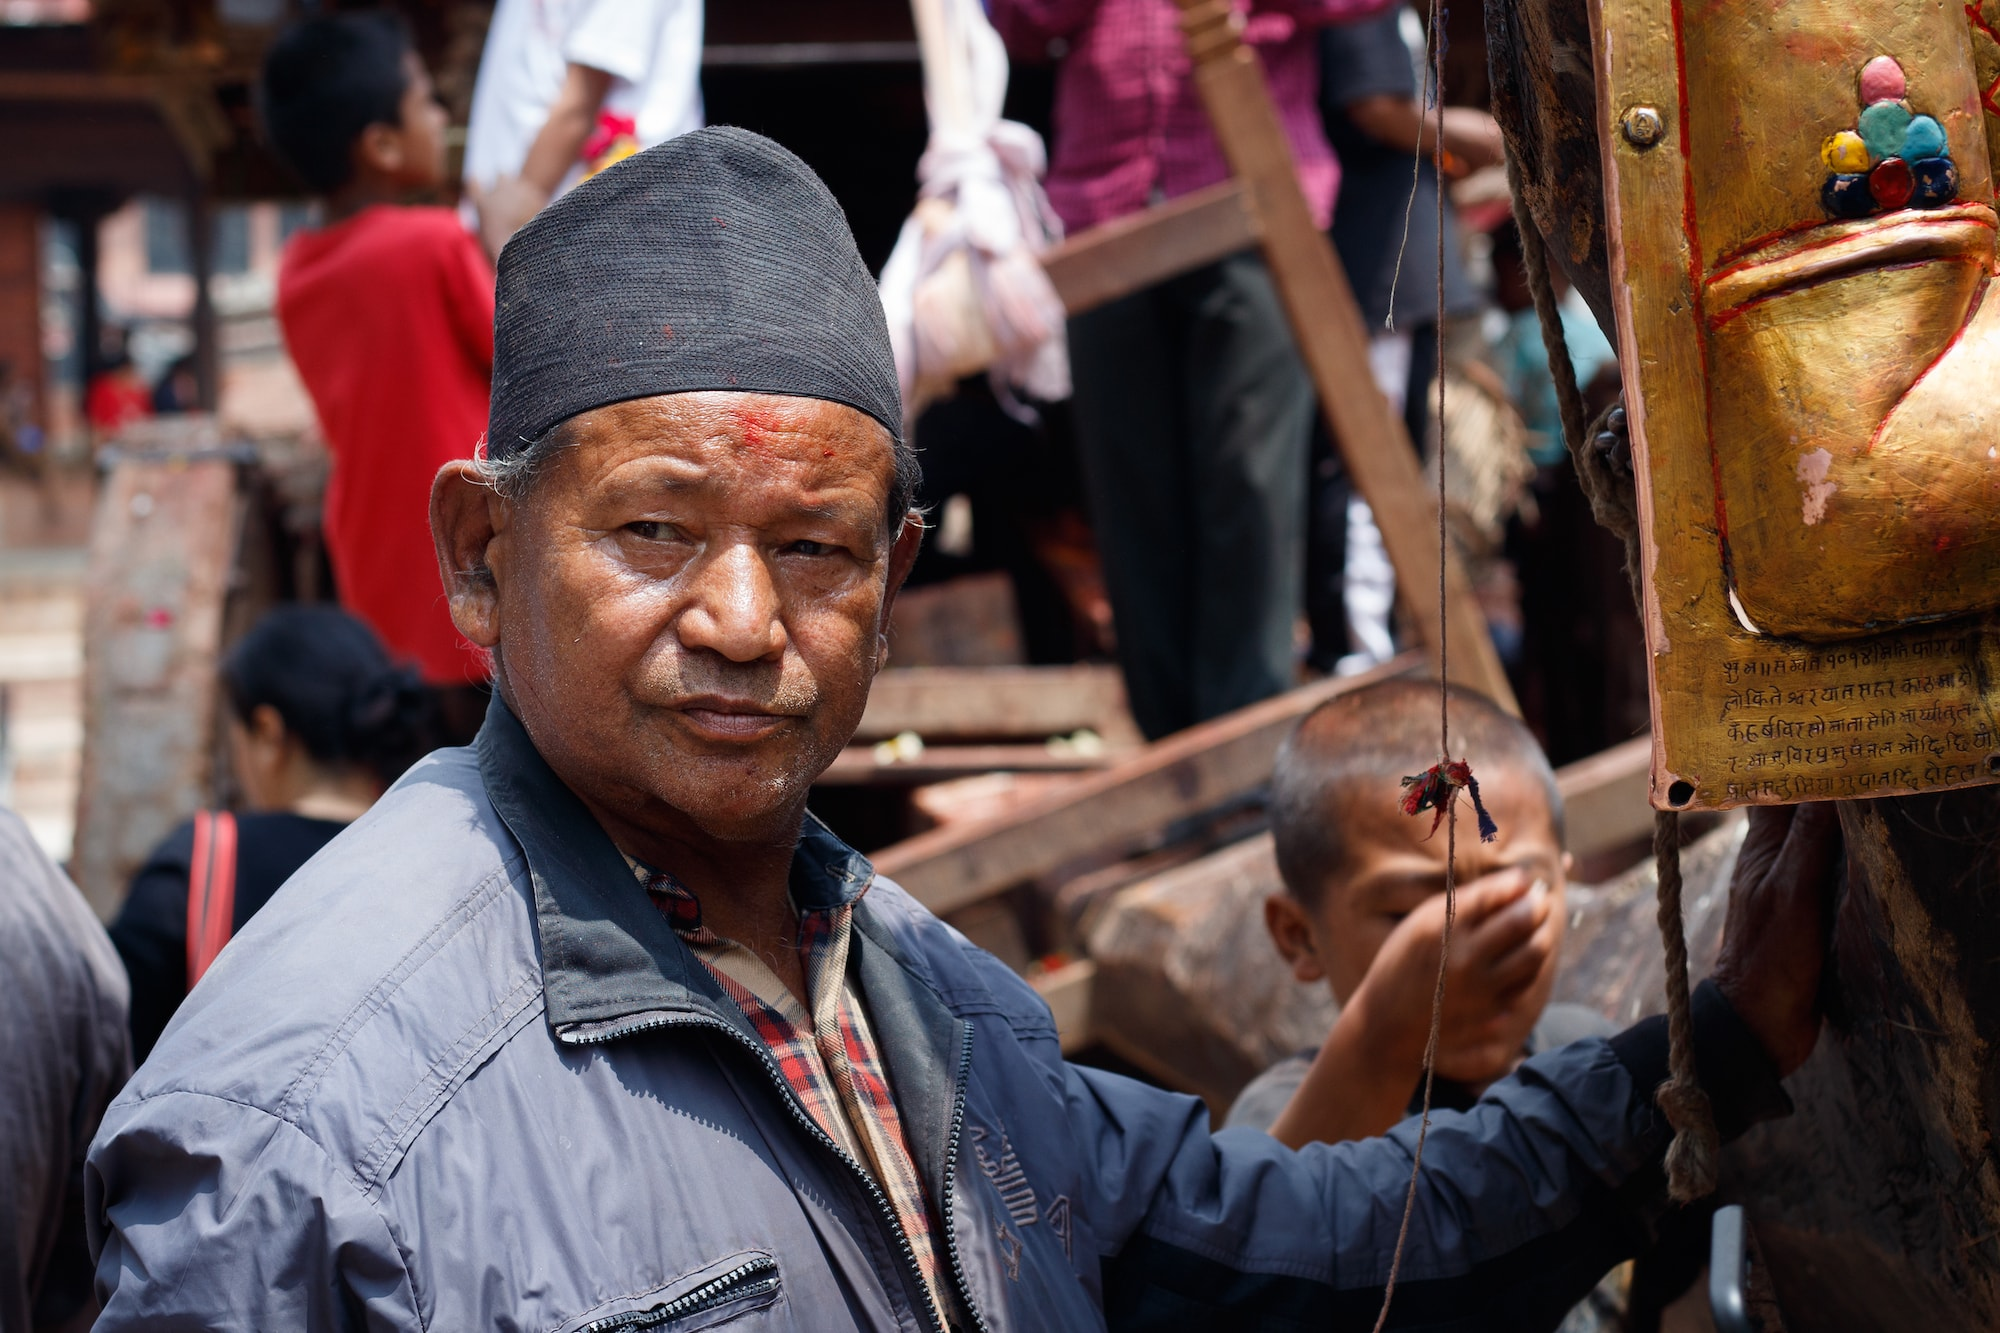 A man standing near a chariot during a religion ceremony at Kathmandu Durbar Square